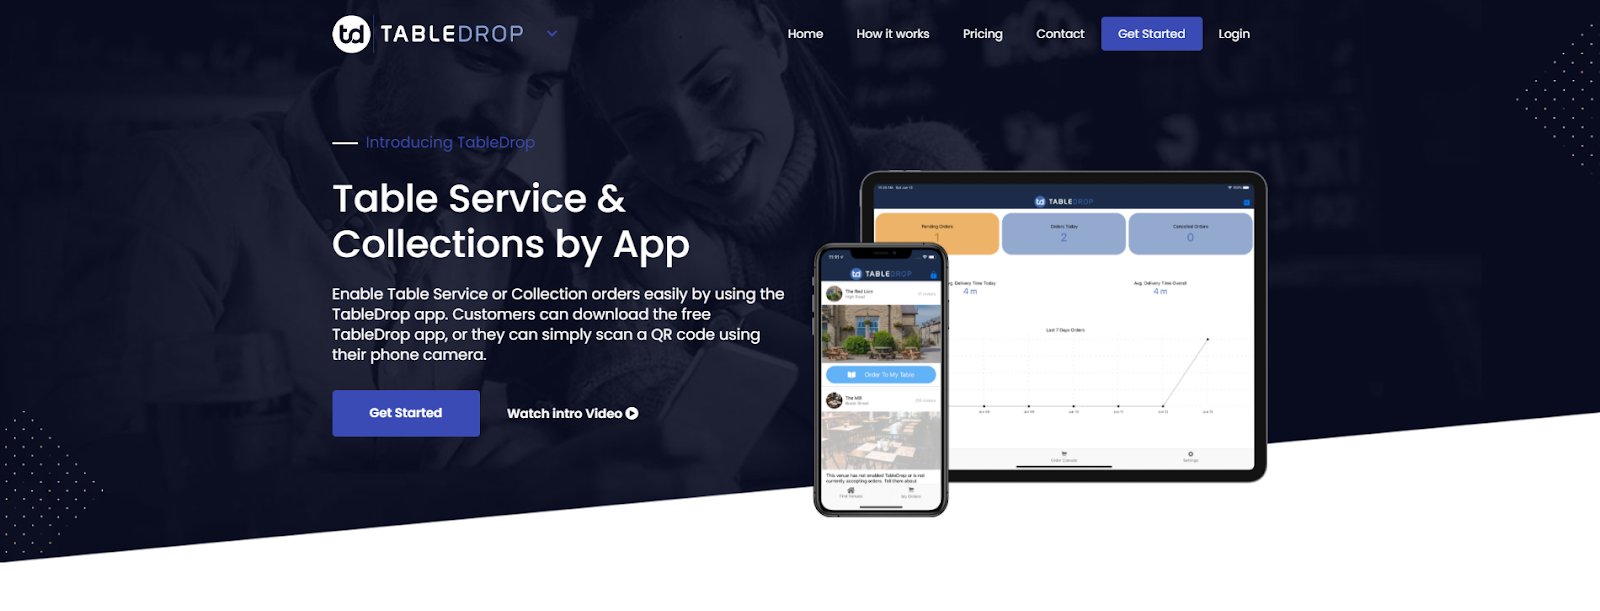 TableDrop App homepage screenshot with mobile and tablet screen photos